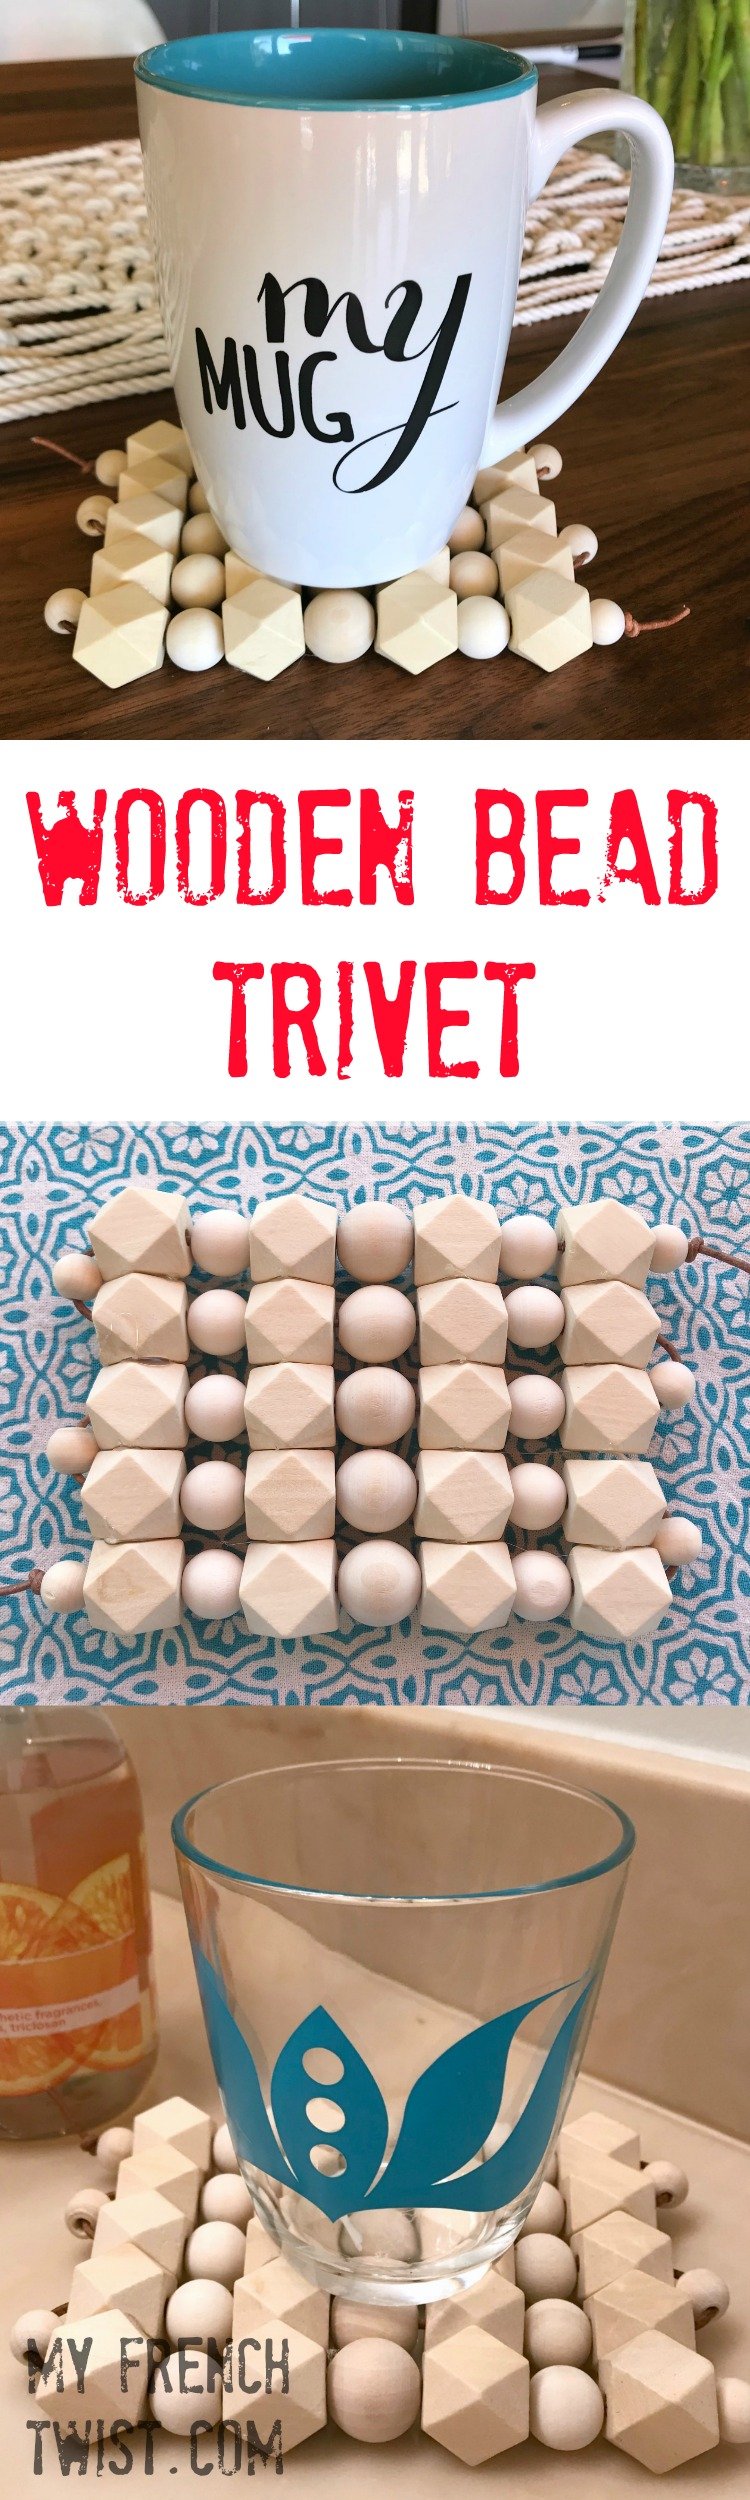 Wooden Bead Trivet My French Twist